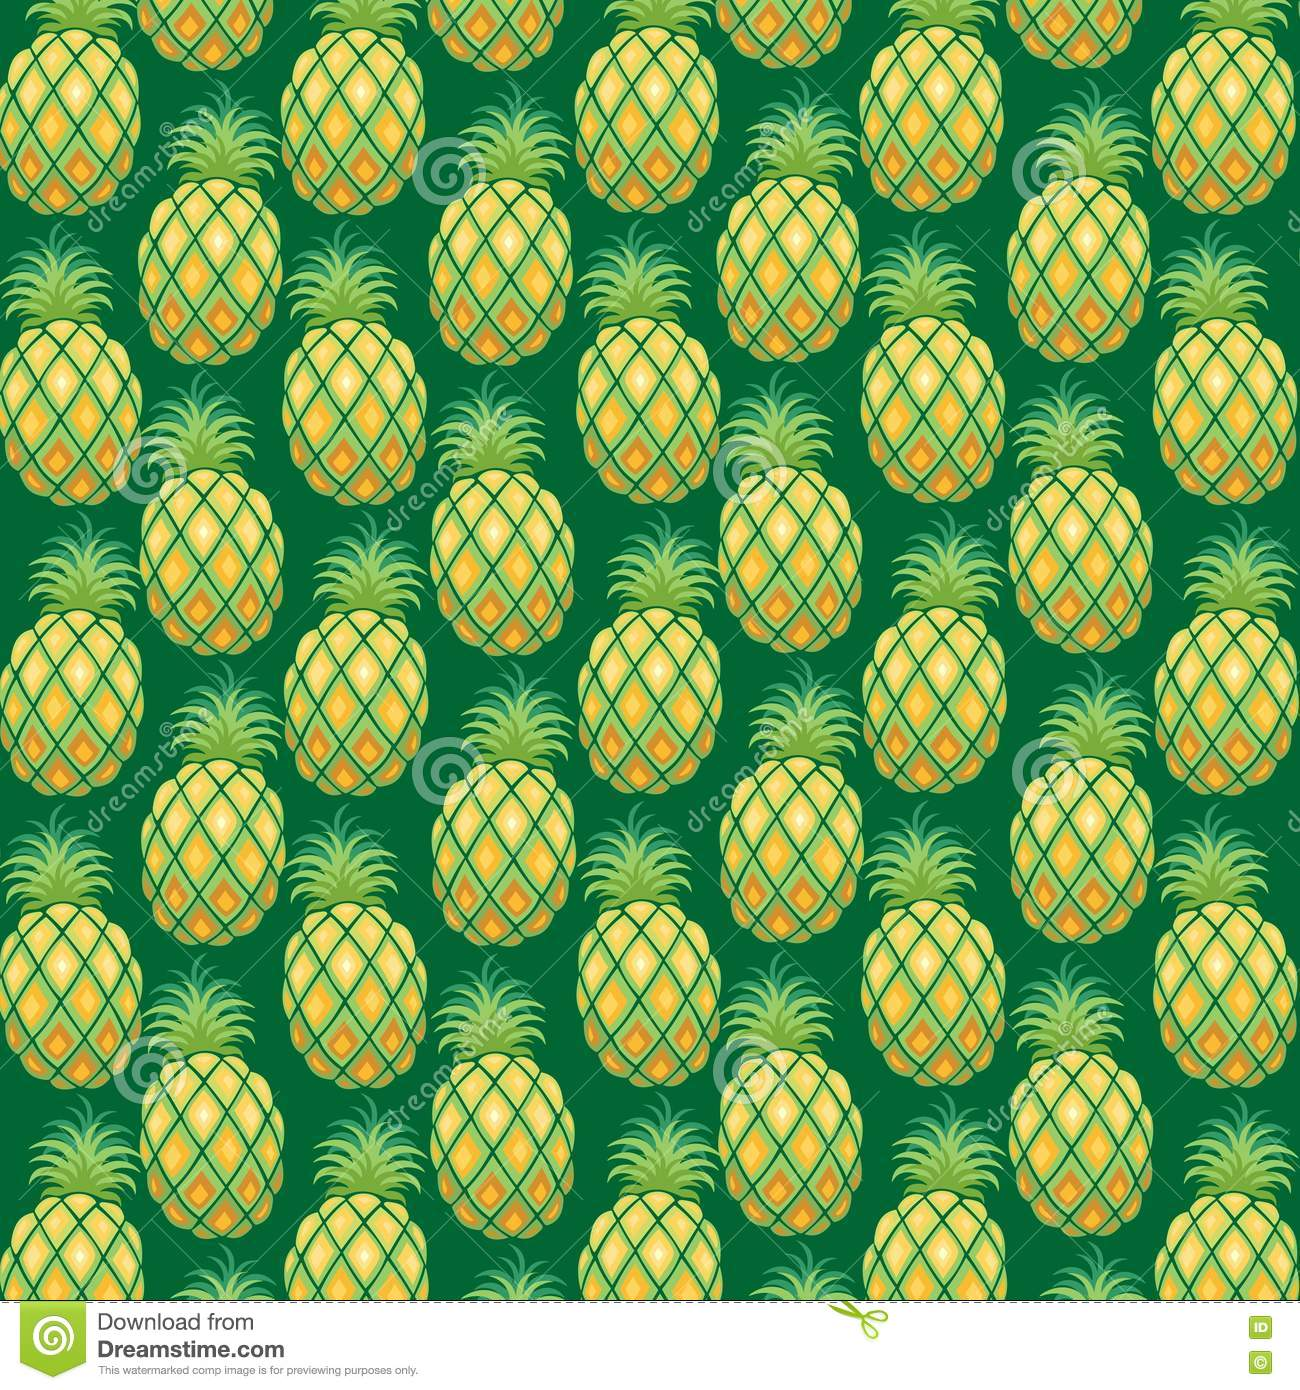 Pineapple Pattern Fabric Vector